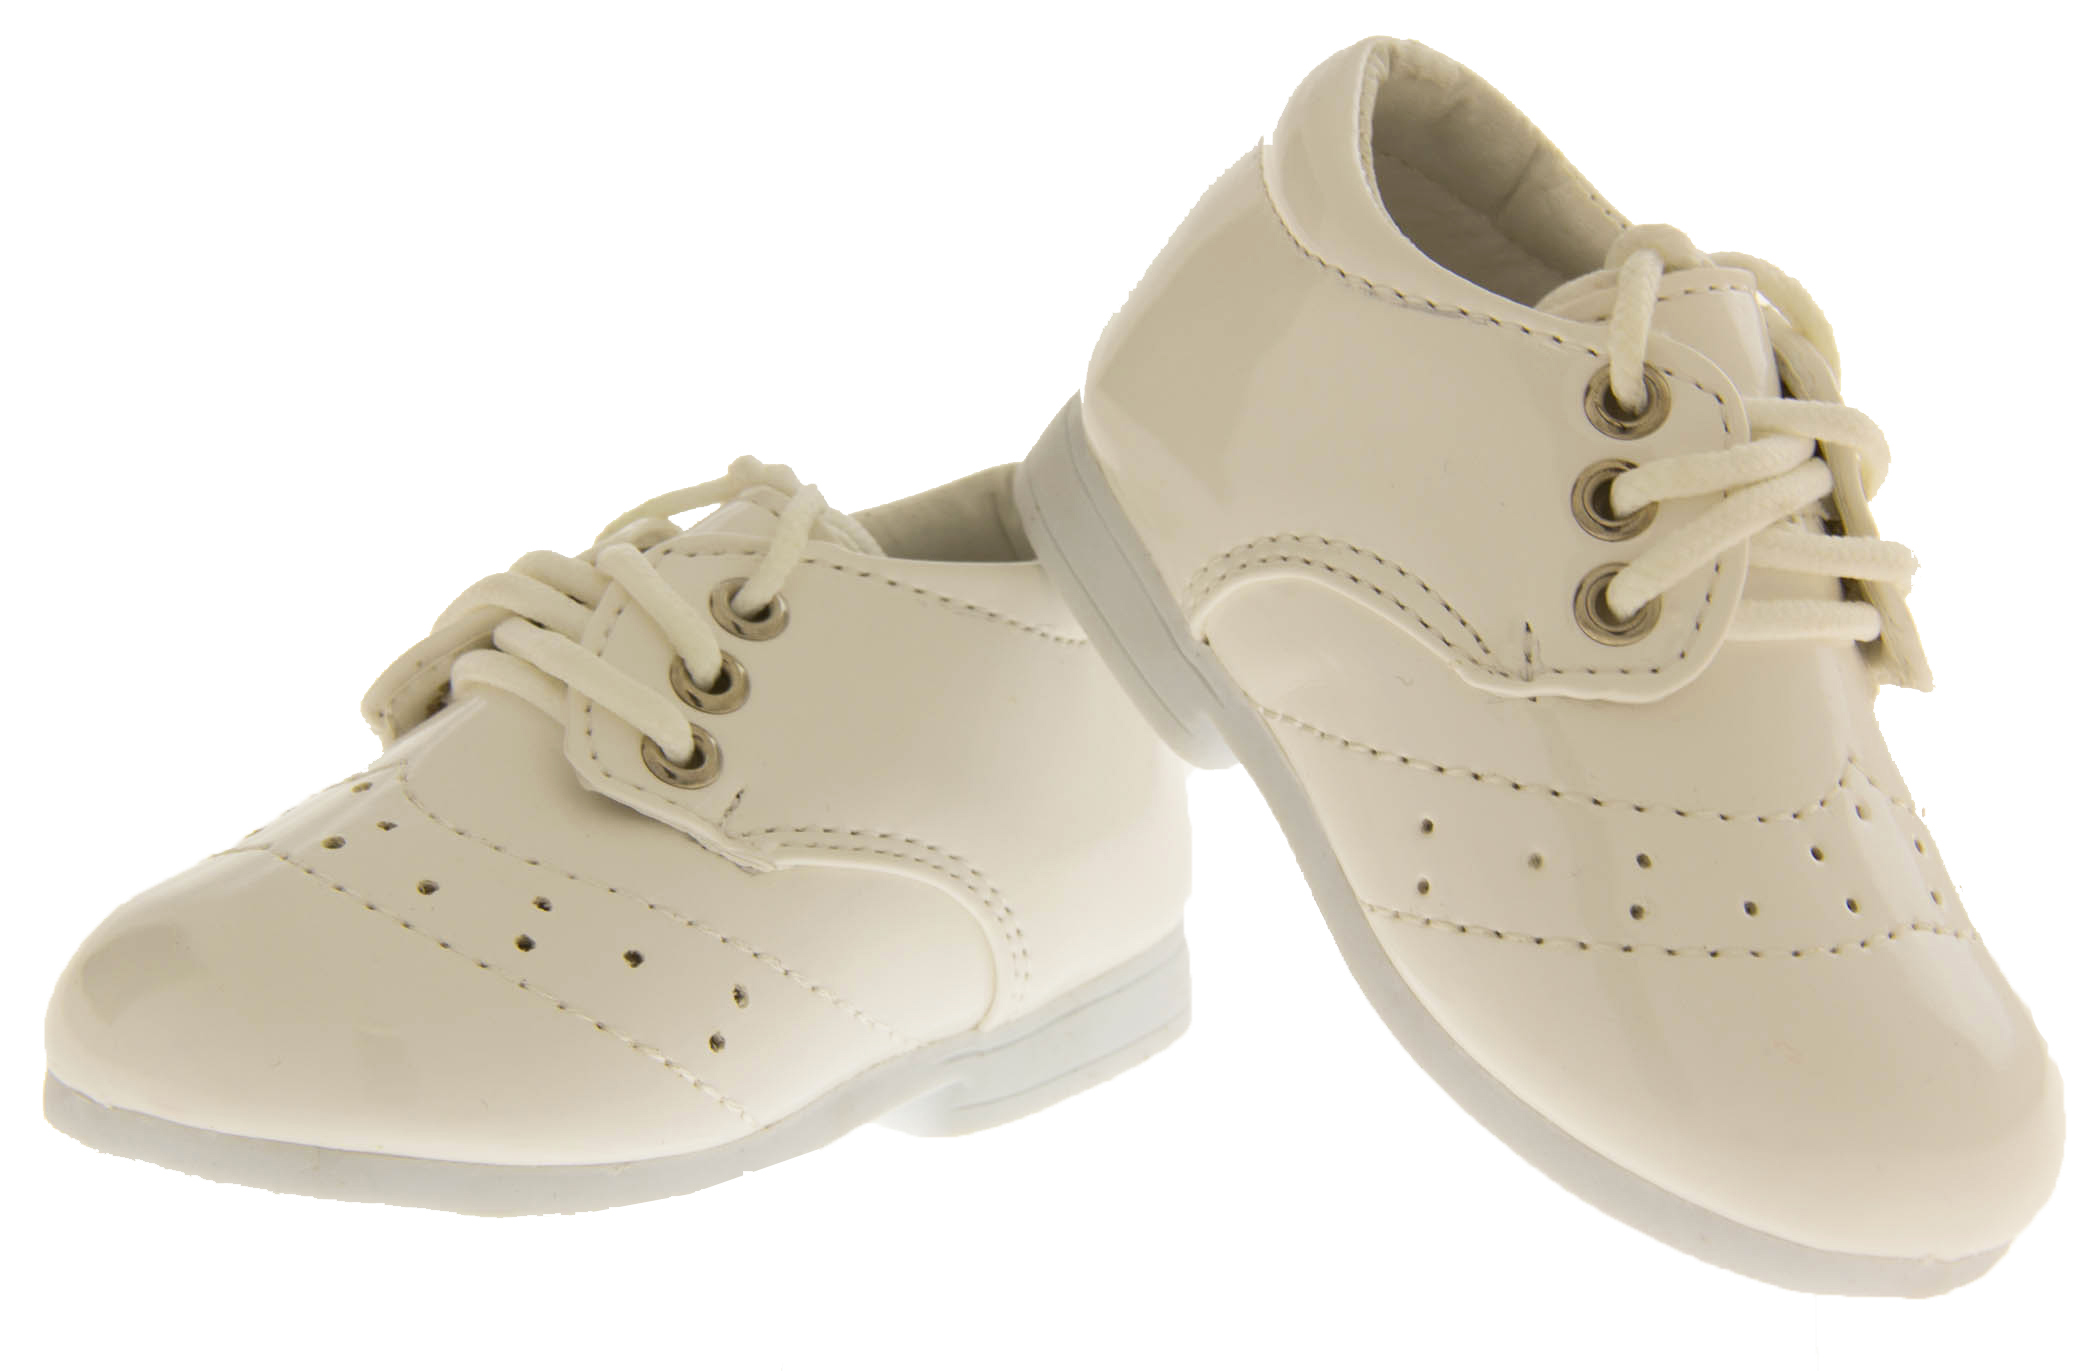 New Baby Toddler Boys White Laces Christening Wedding ...